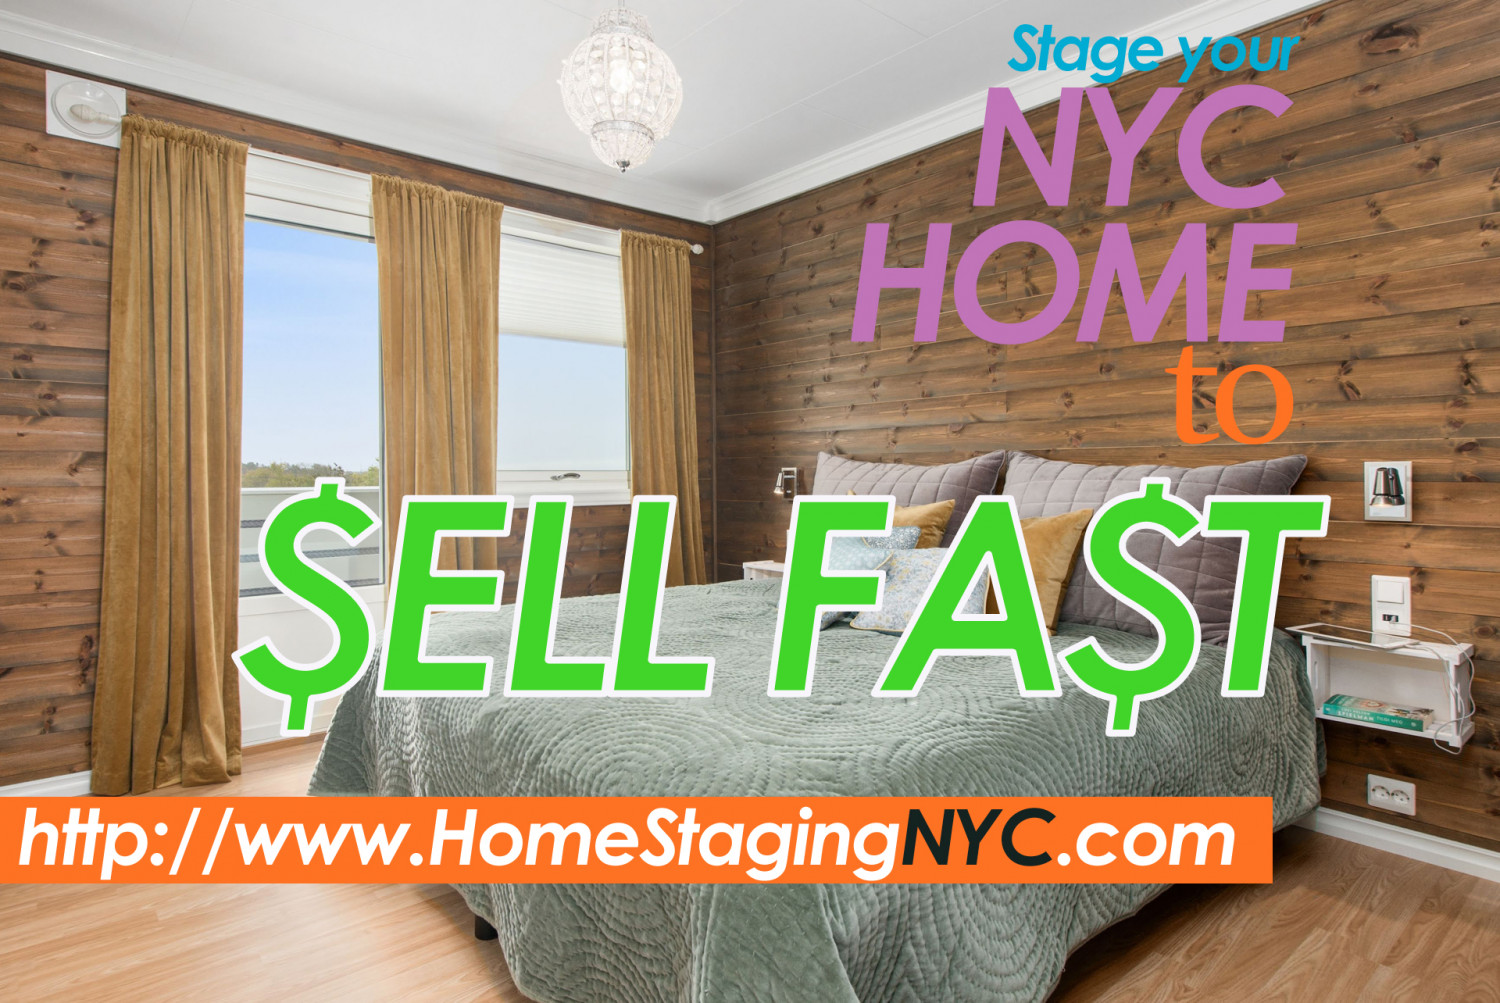 Find a Home Staging and Interior Design Professional in New York City Infographic